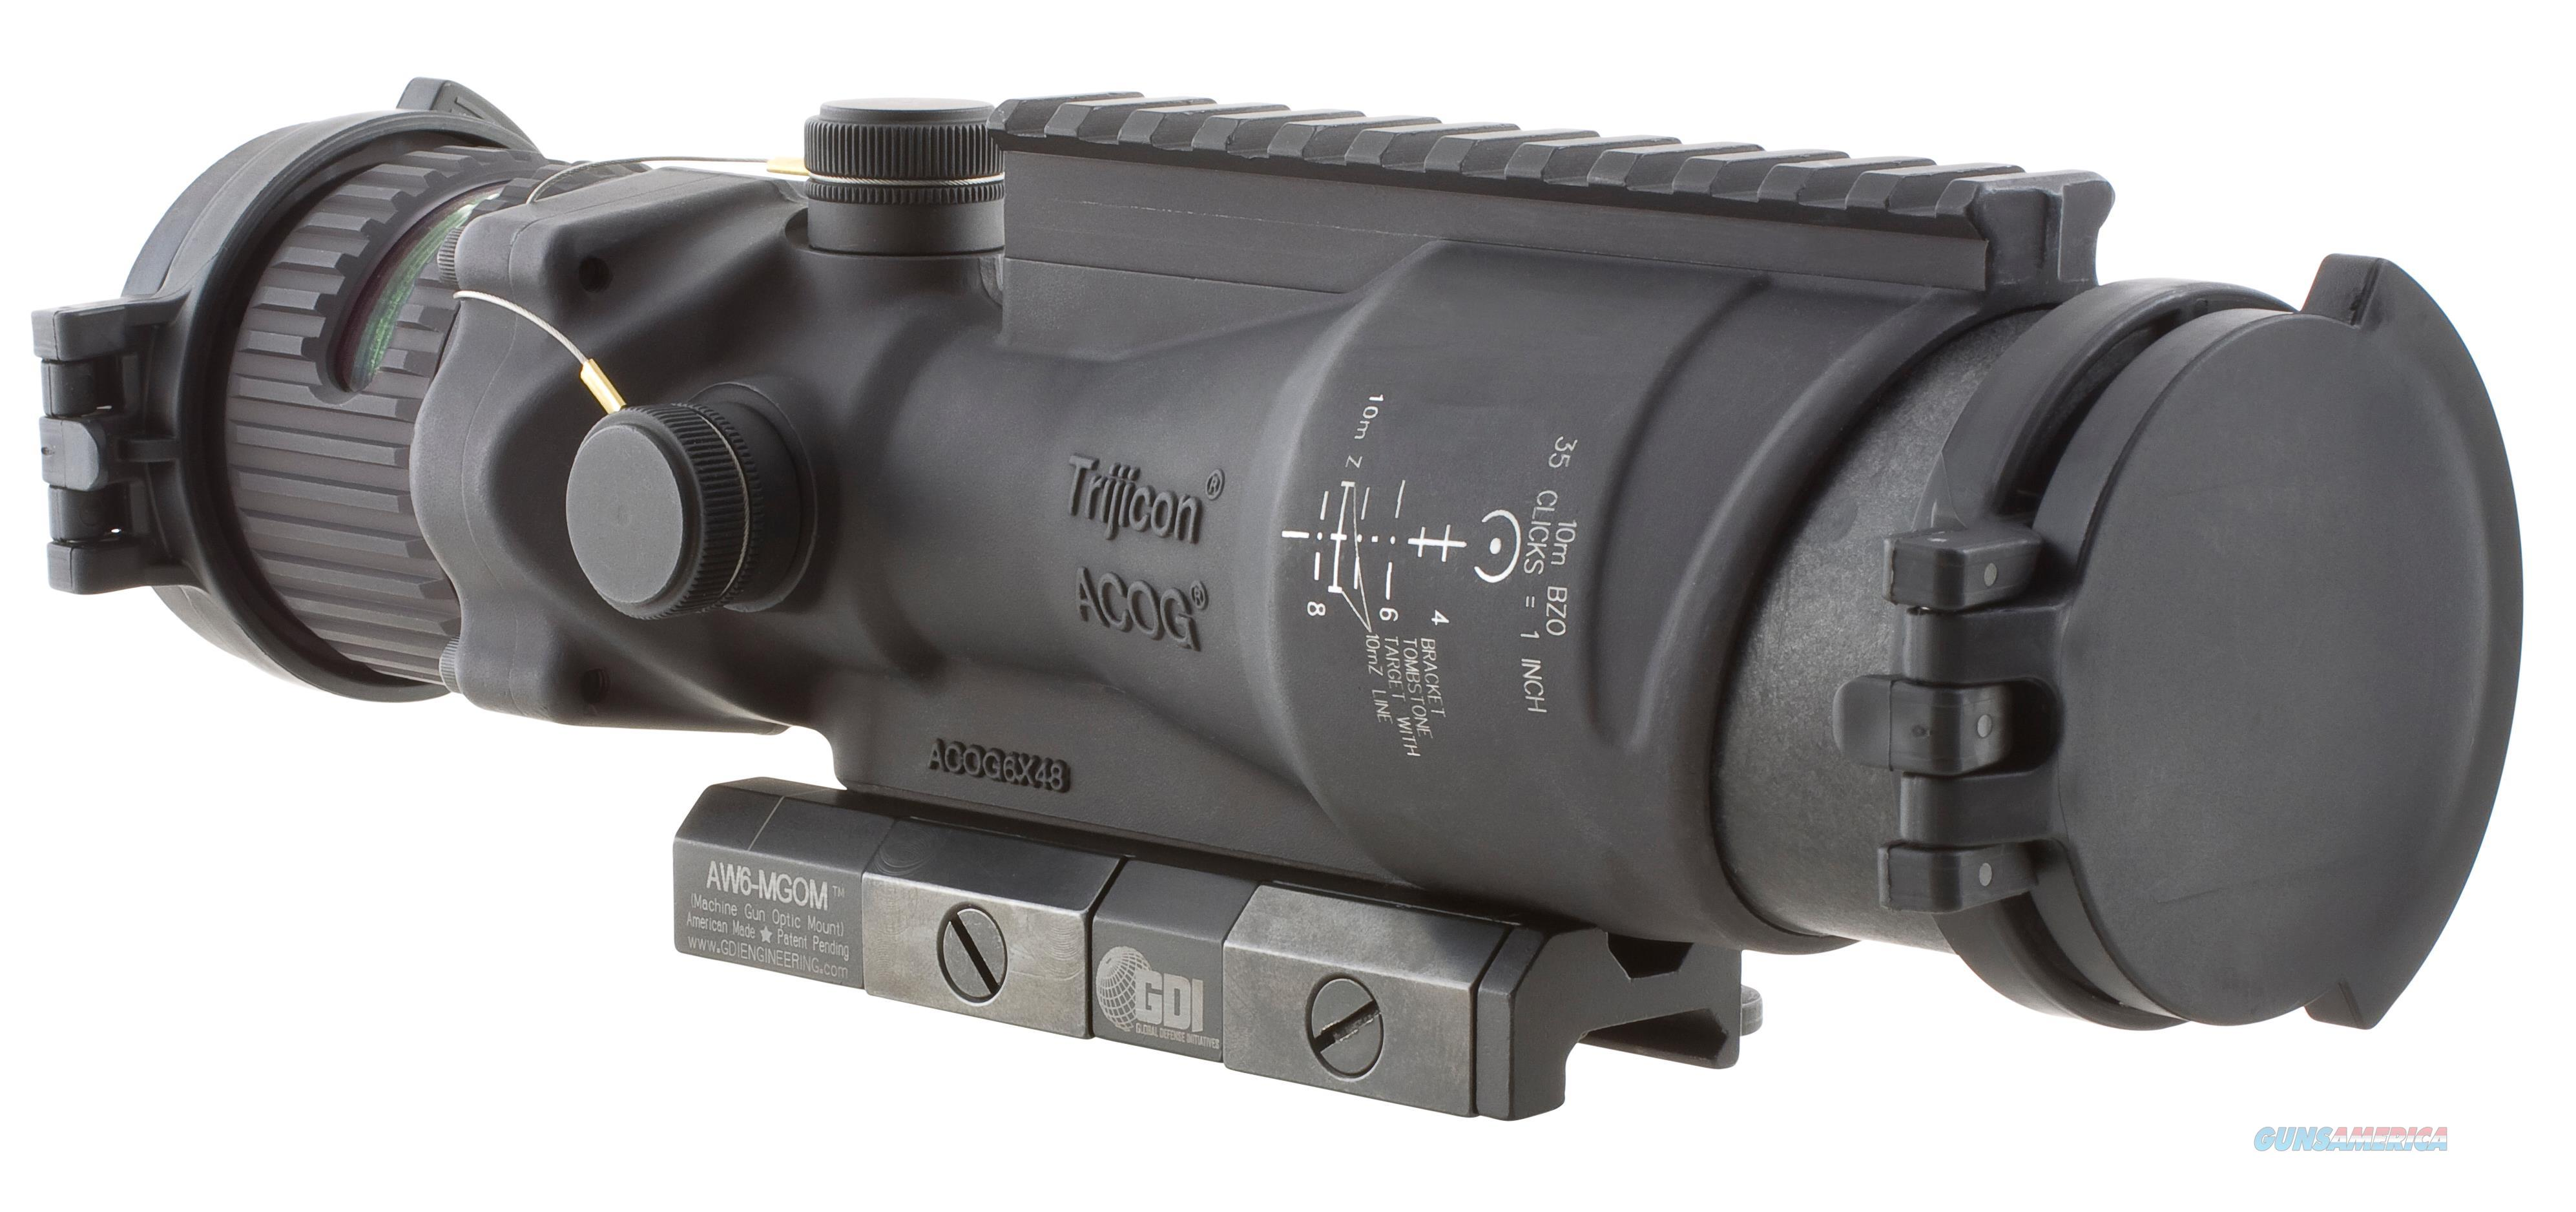 Trijicon Acog 6X48 Green M240 Mgo Reticle TA648MGOM240  Non-Guns > Scopes/Mounts/Rings & Optics > Mounts > Other